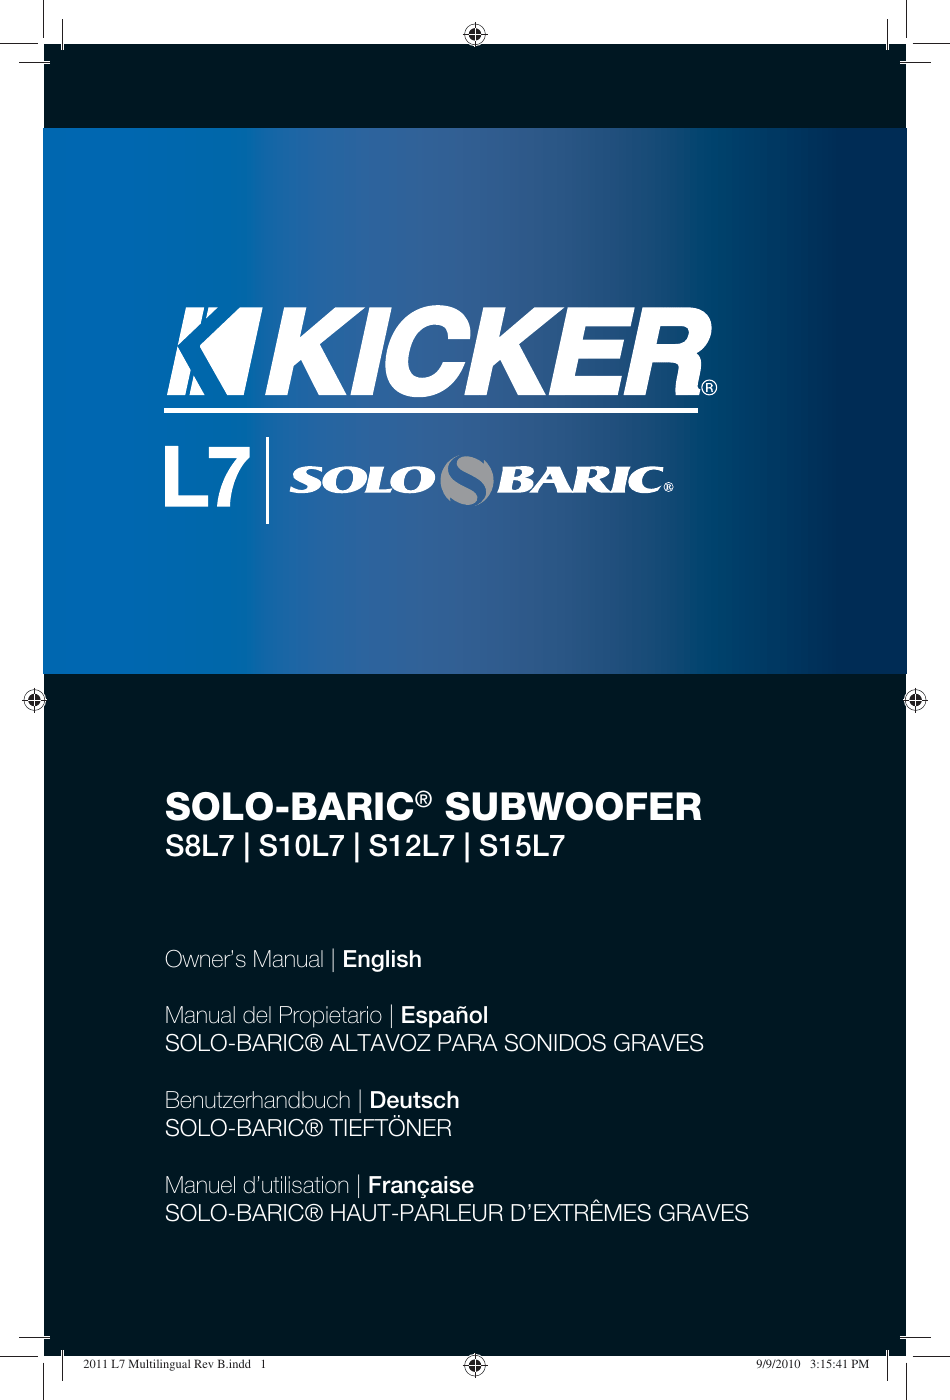 medium resolution of kicker solo baric l7 15 wiring diagram kicker 2011 solo baric l7 owners manual multilingual